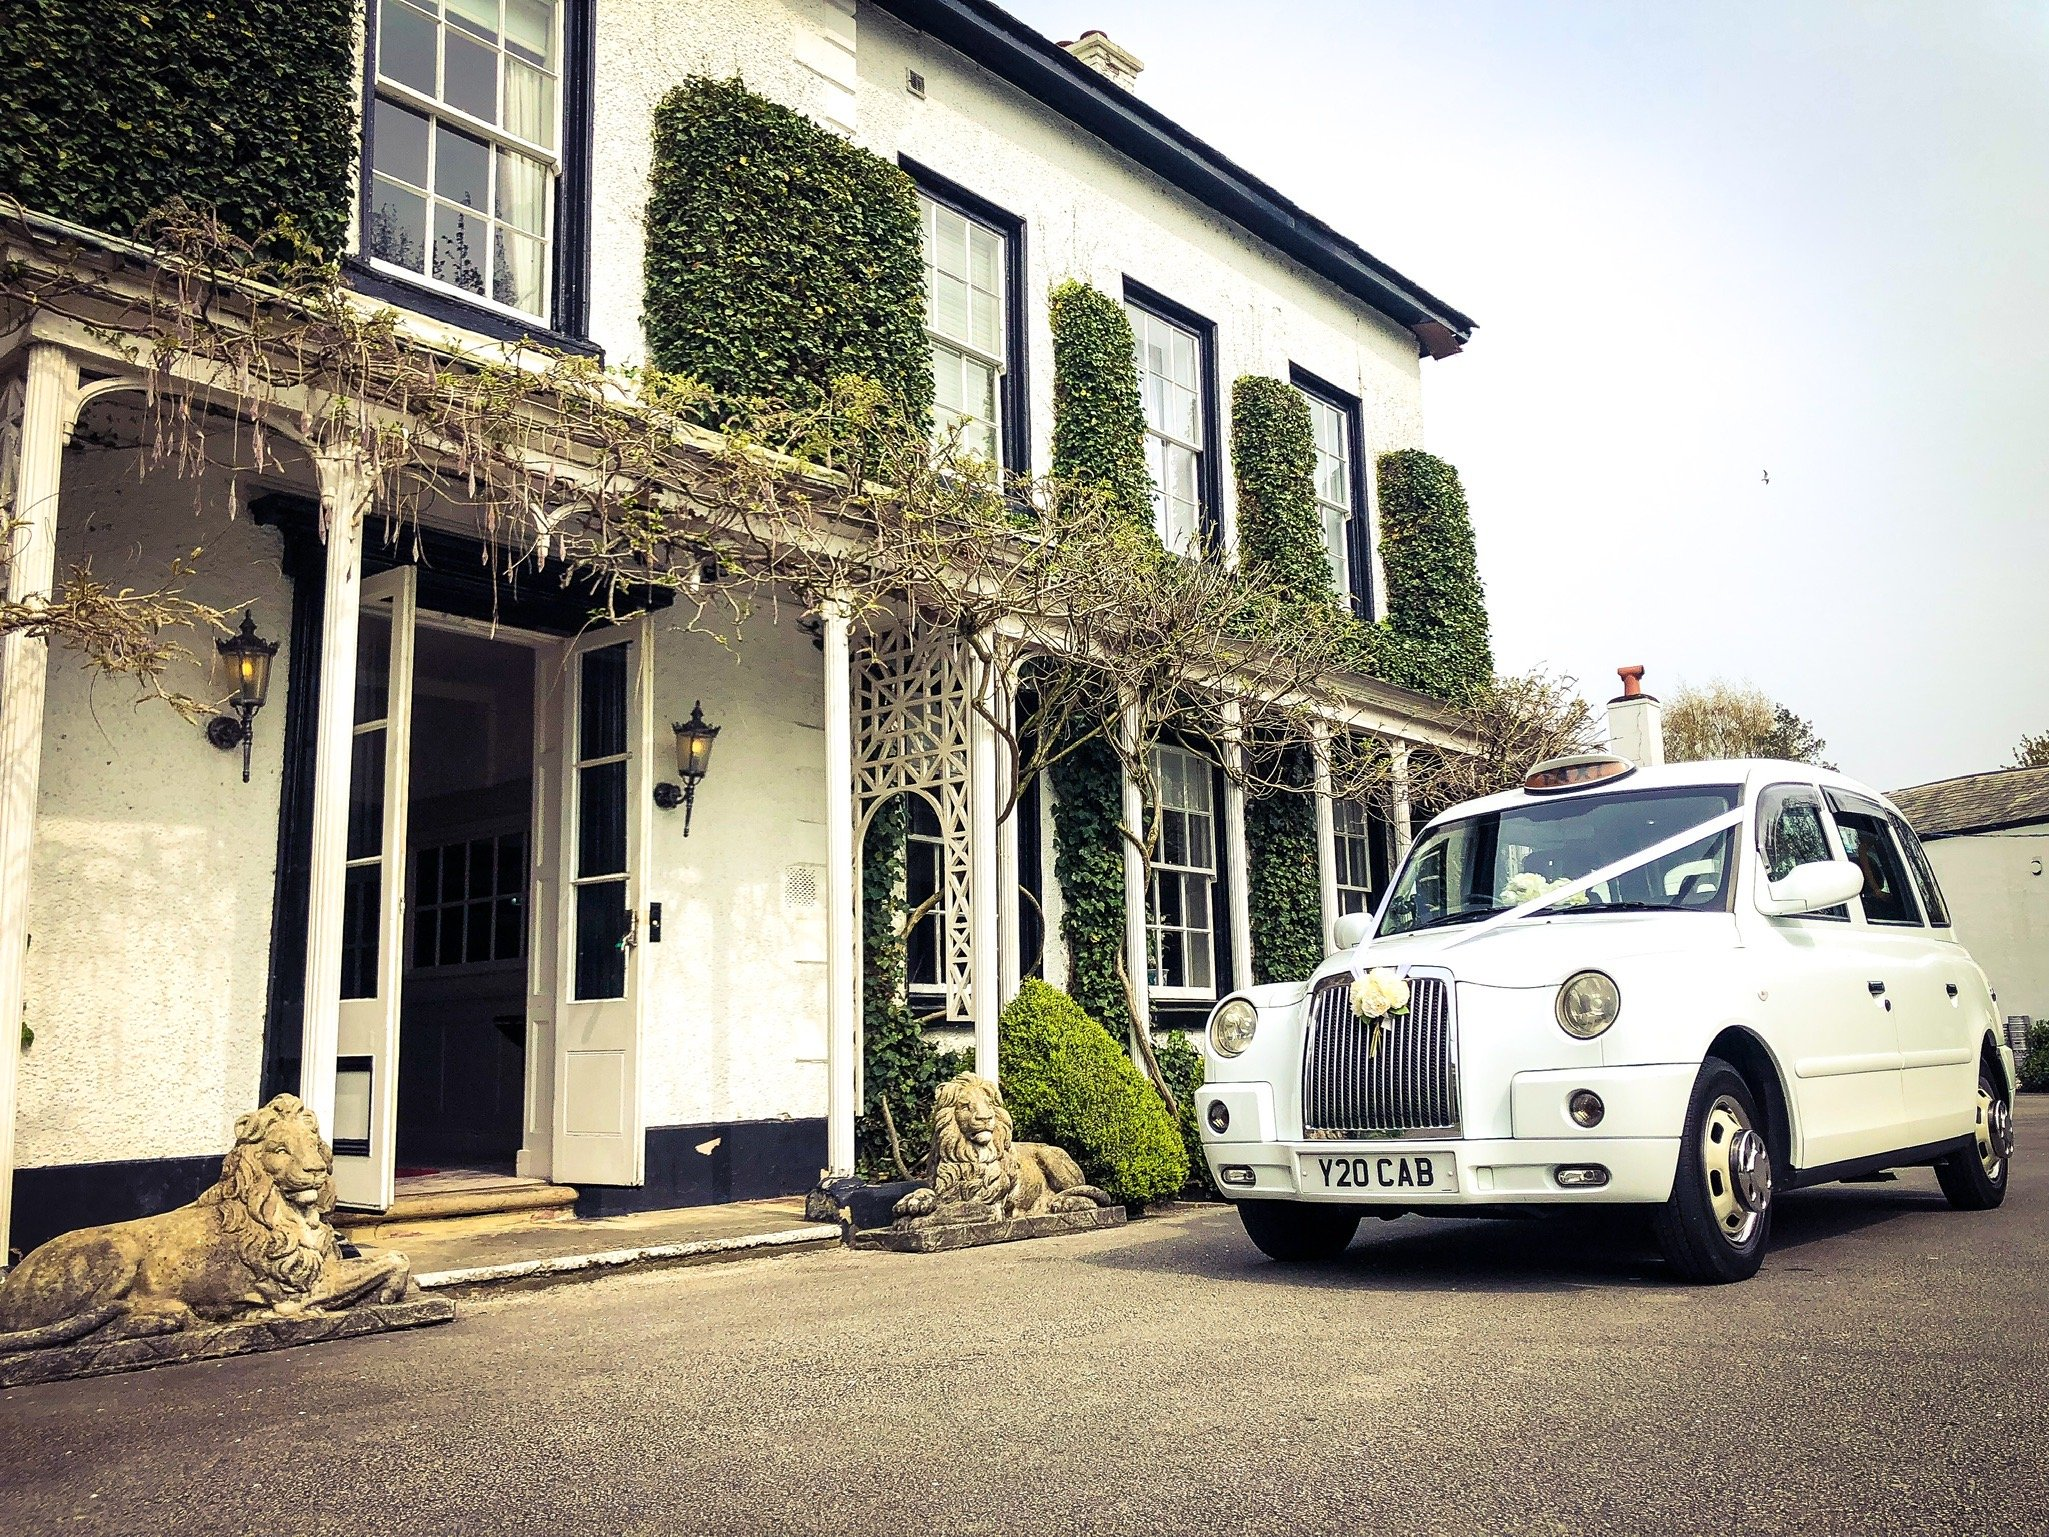 Wedding cars taxis cabs Lymm